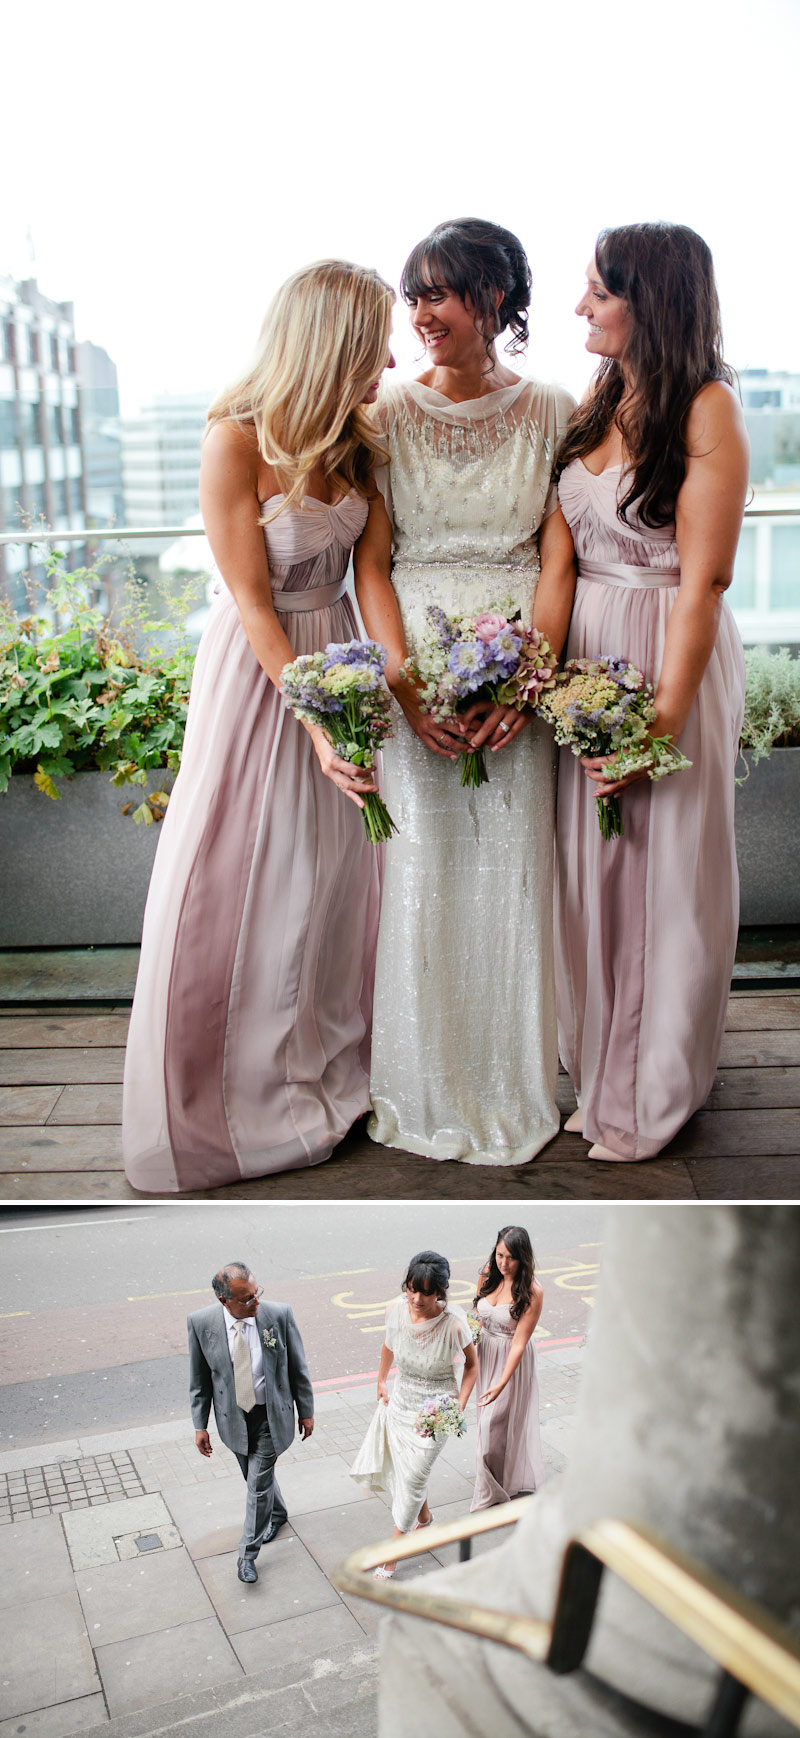 Tarah-Coonan-nude-pink-maxi-dress-bridesmaids